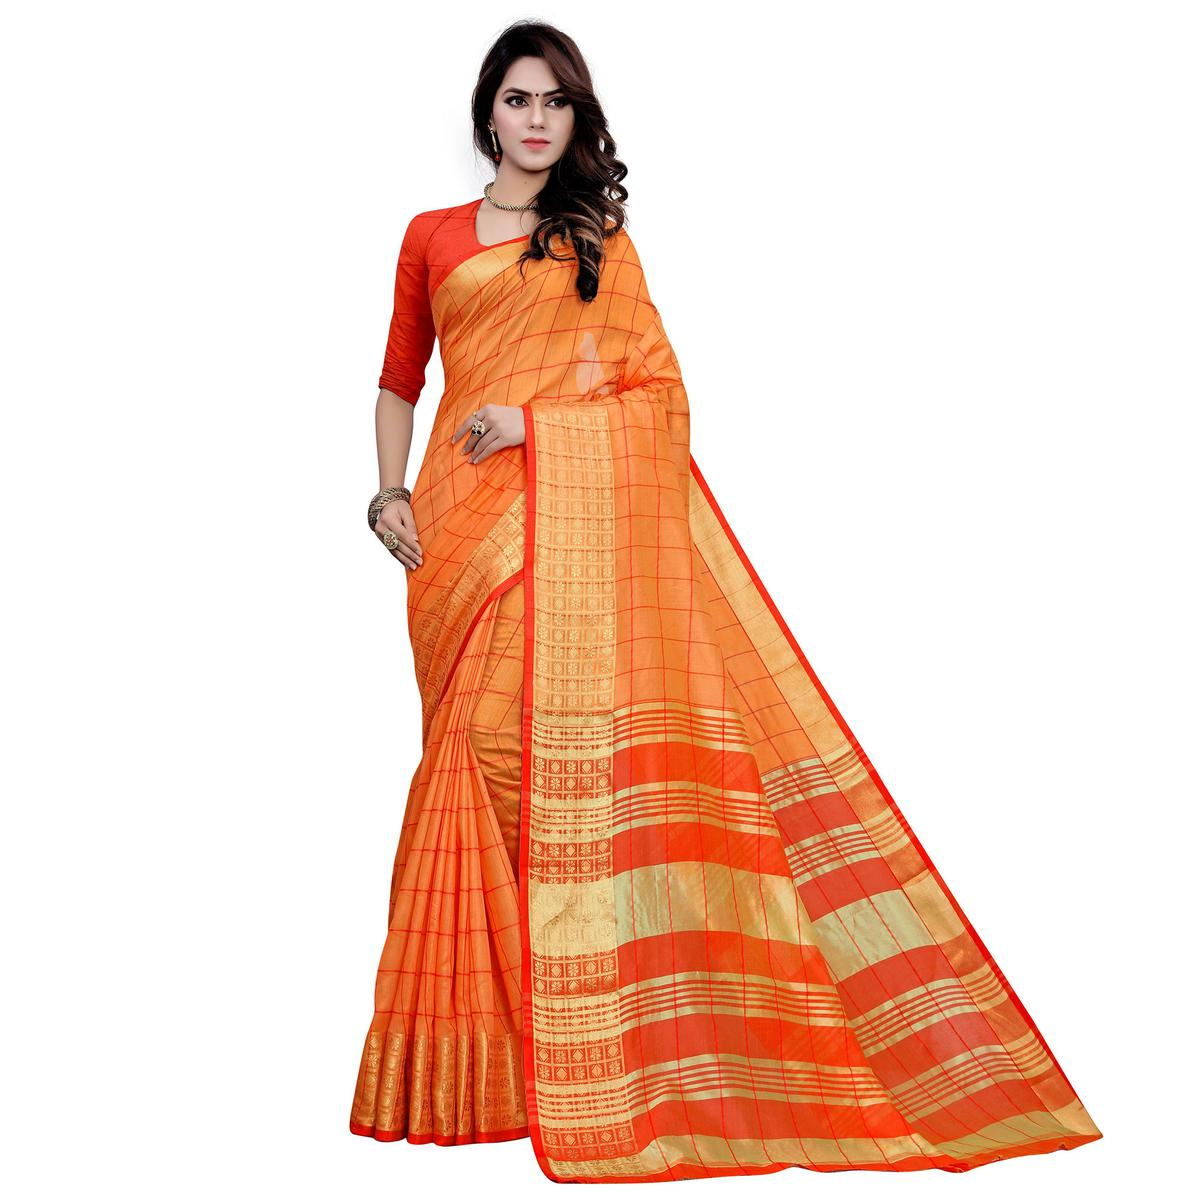 Desirable Orange Colored Festive Wear Woven Work Cotton Saree